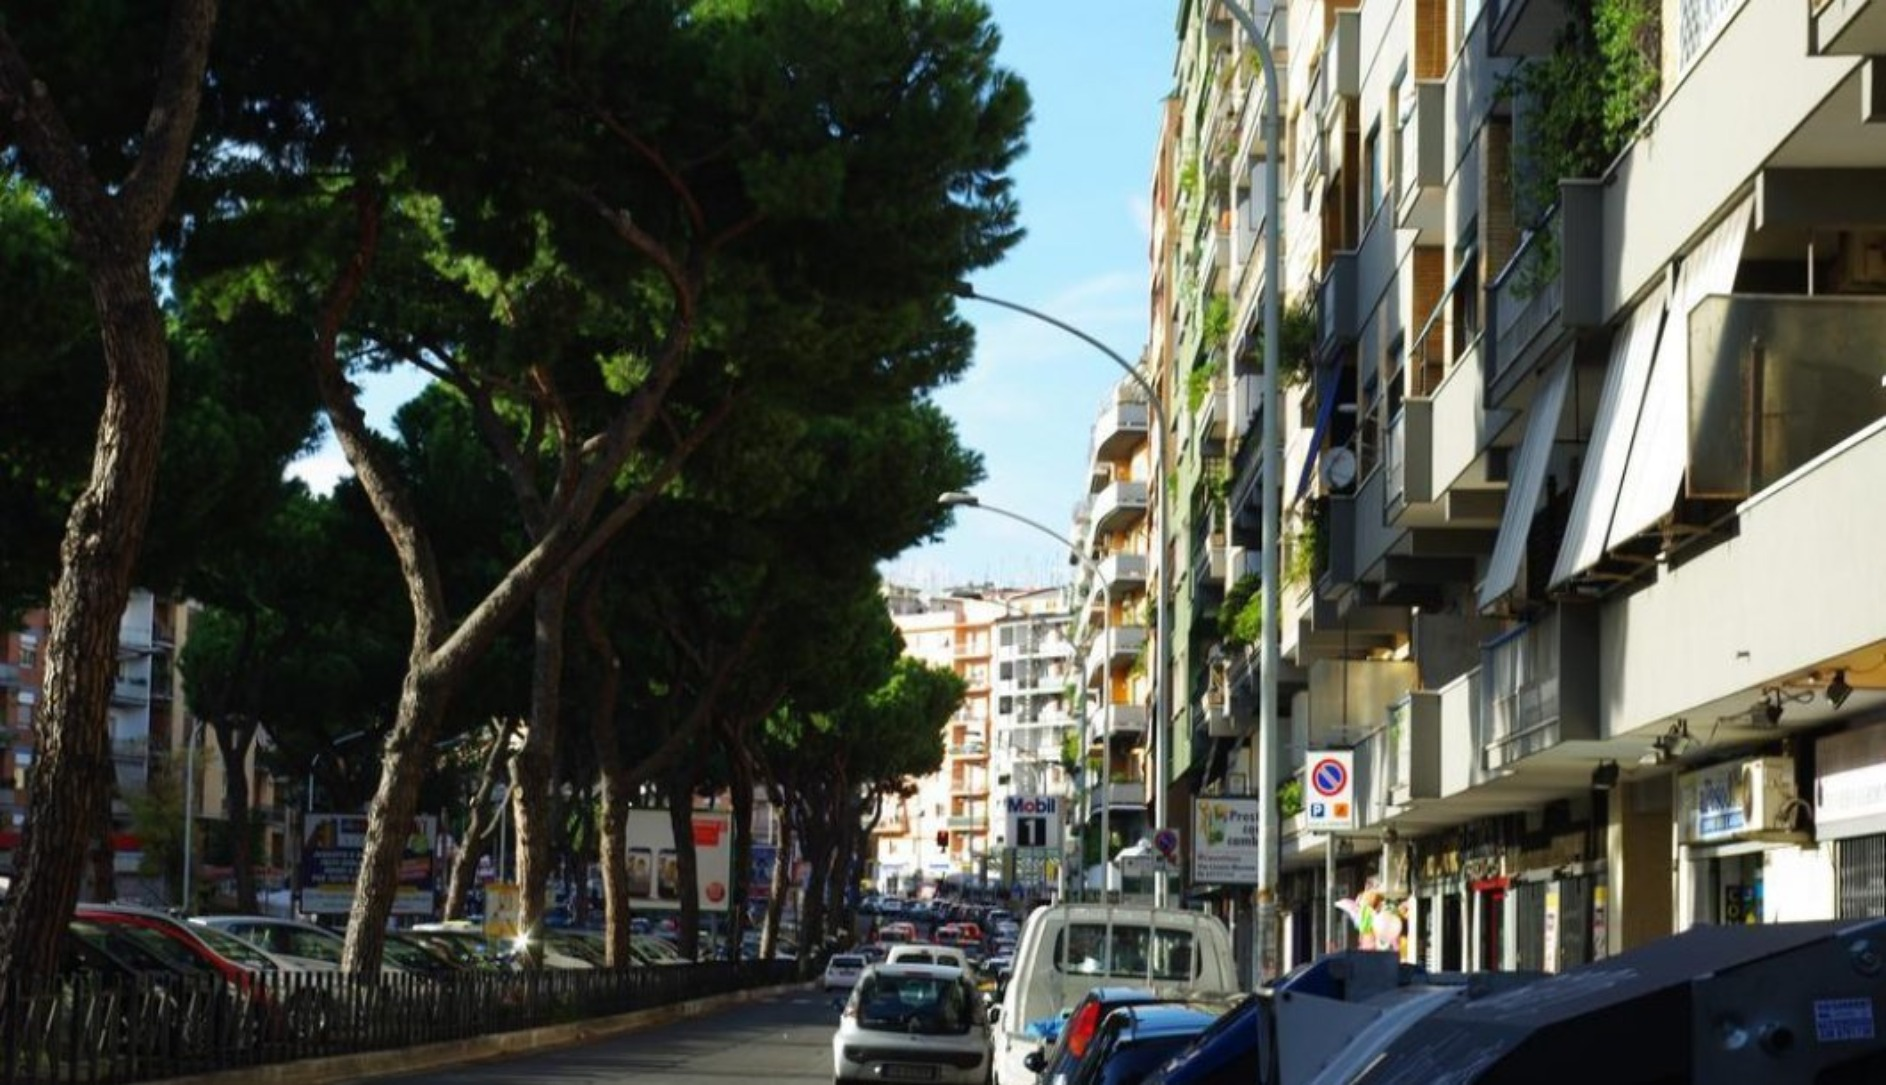 A close up of a busy city street at Appia avenue 639.